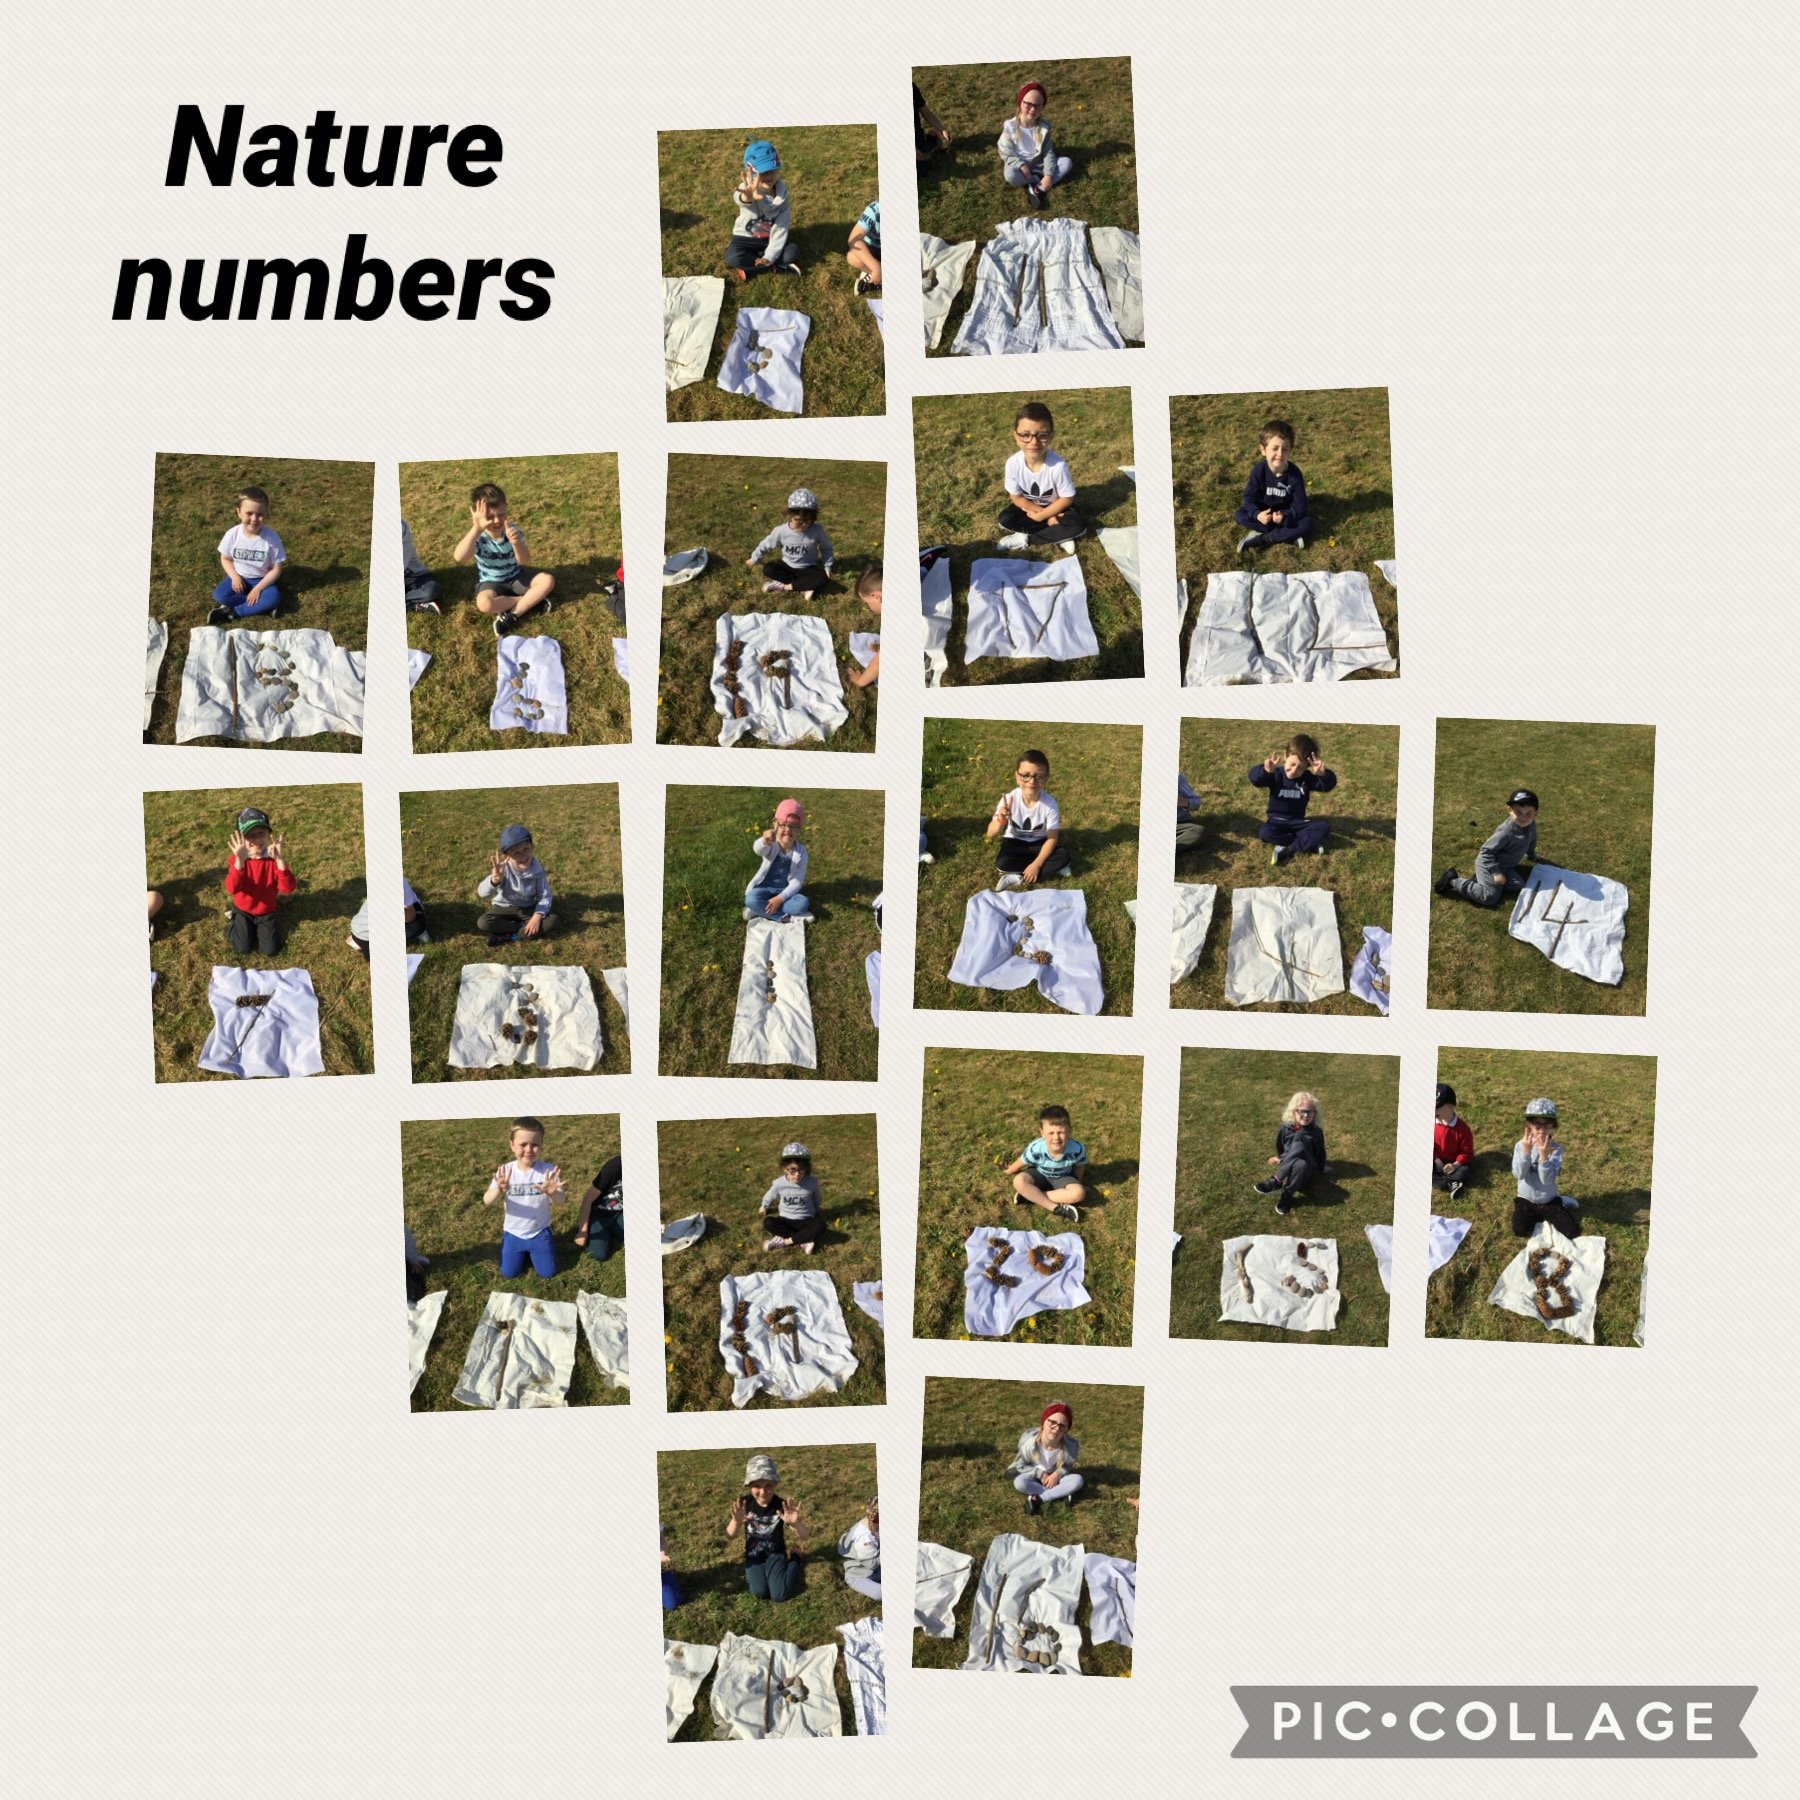 Nature numbers